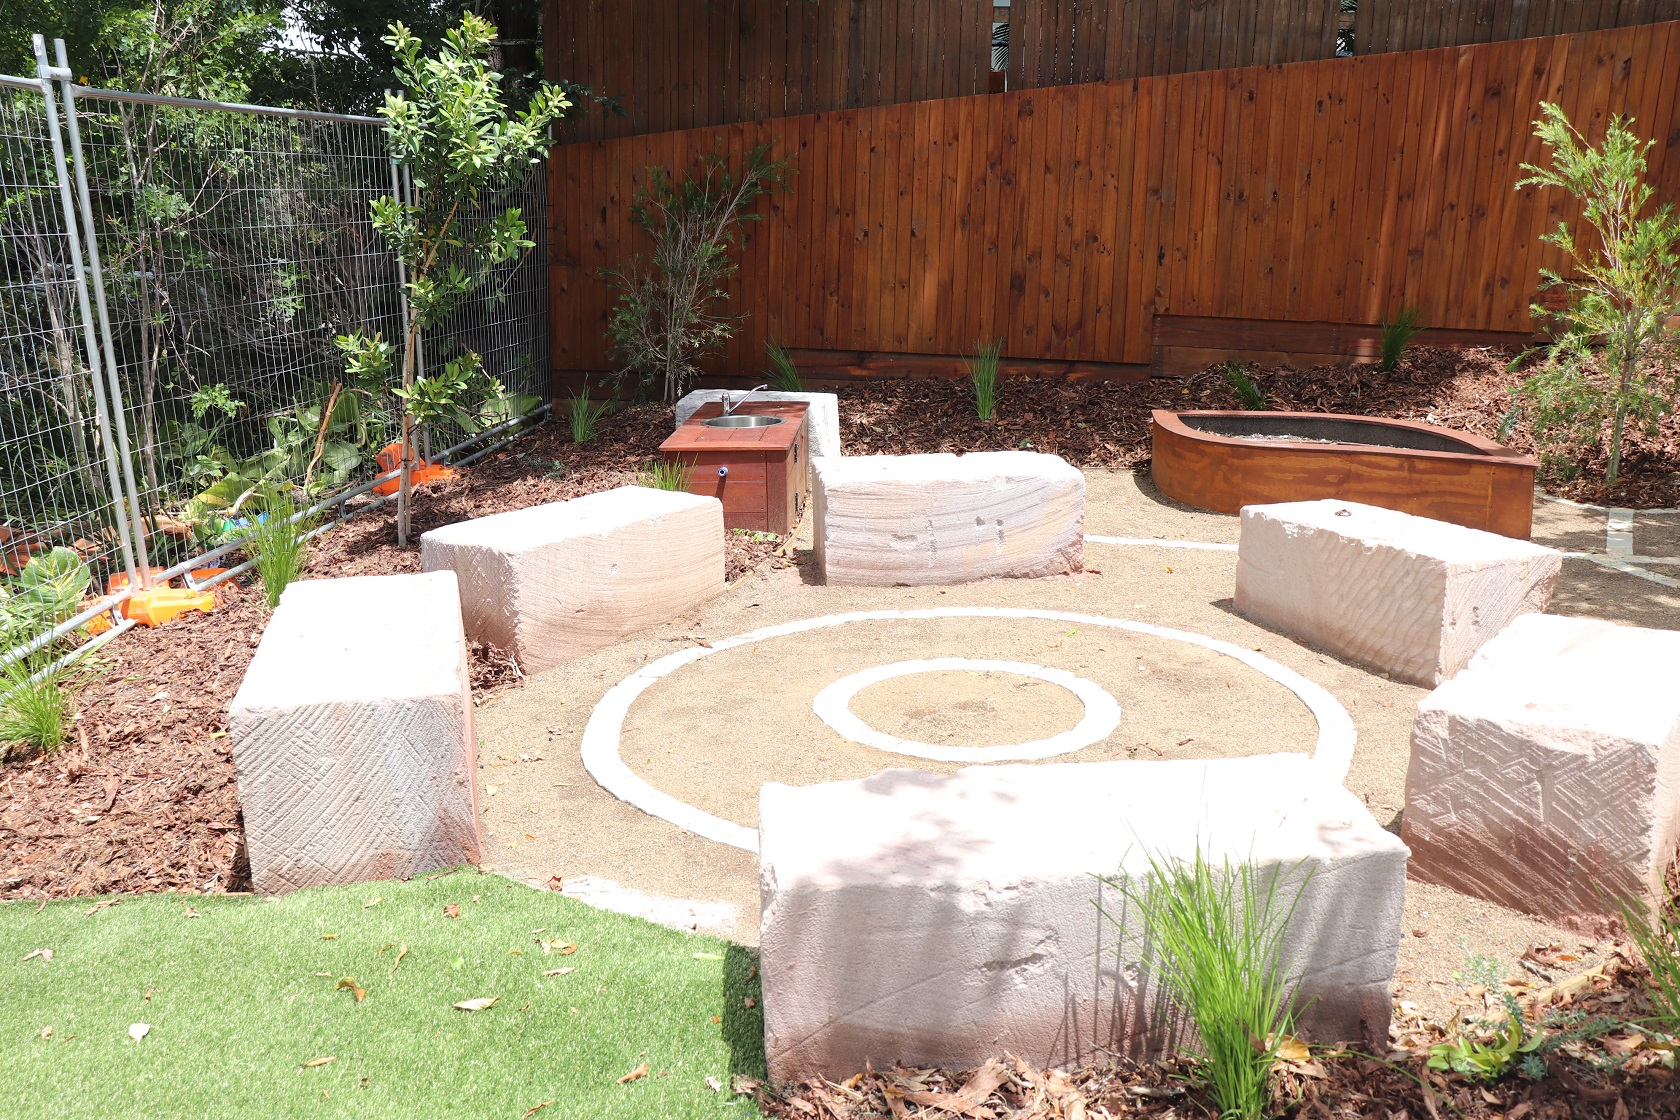 Sandstone block seating - ashgrove